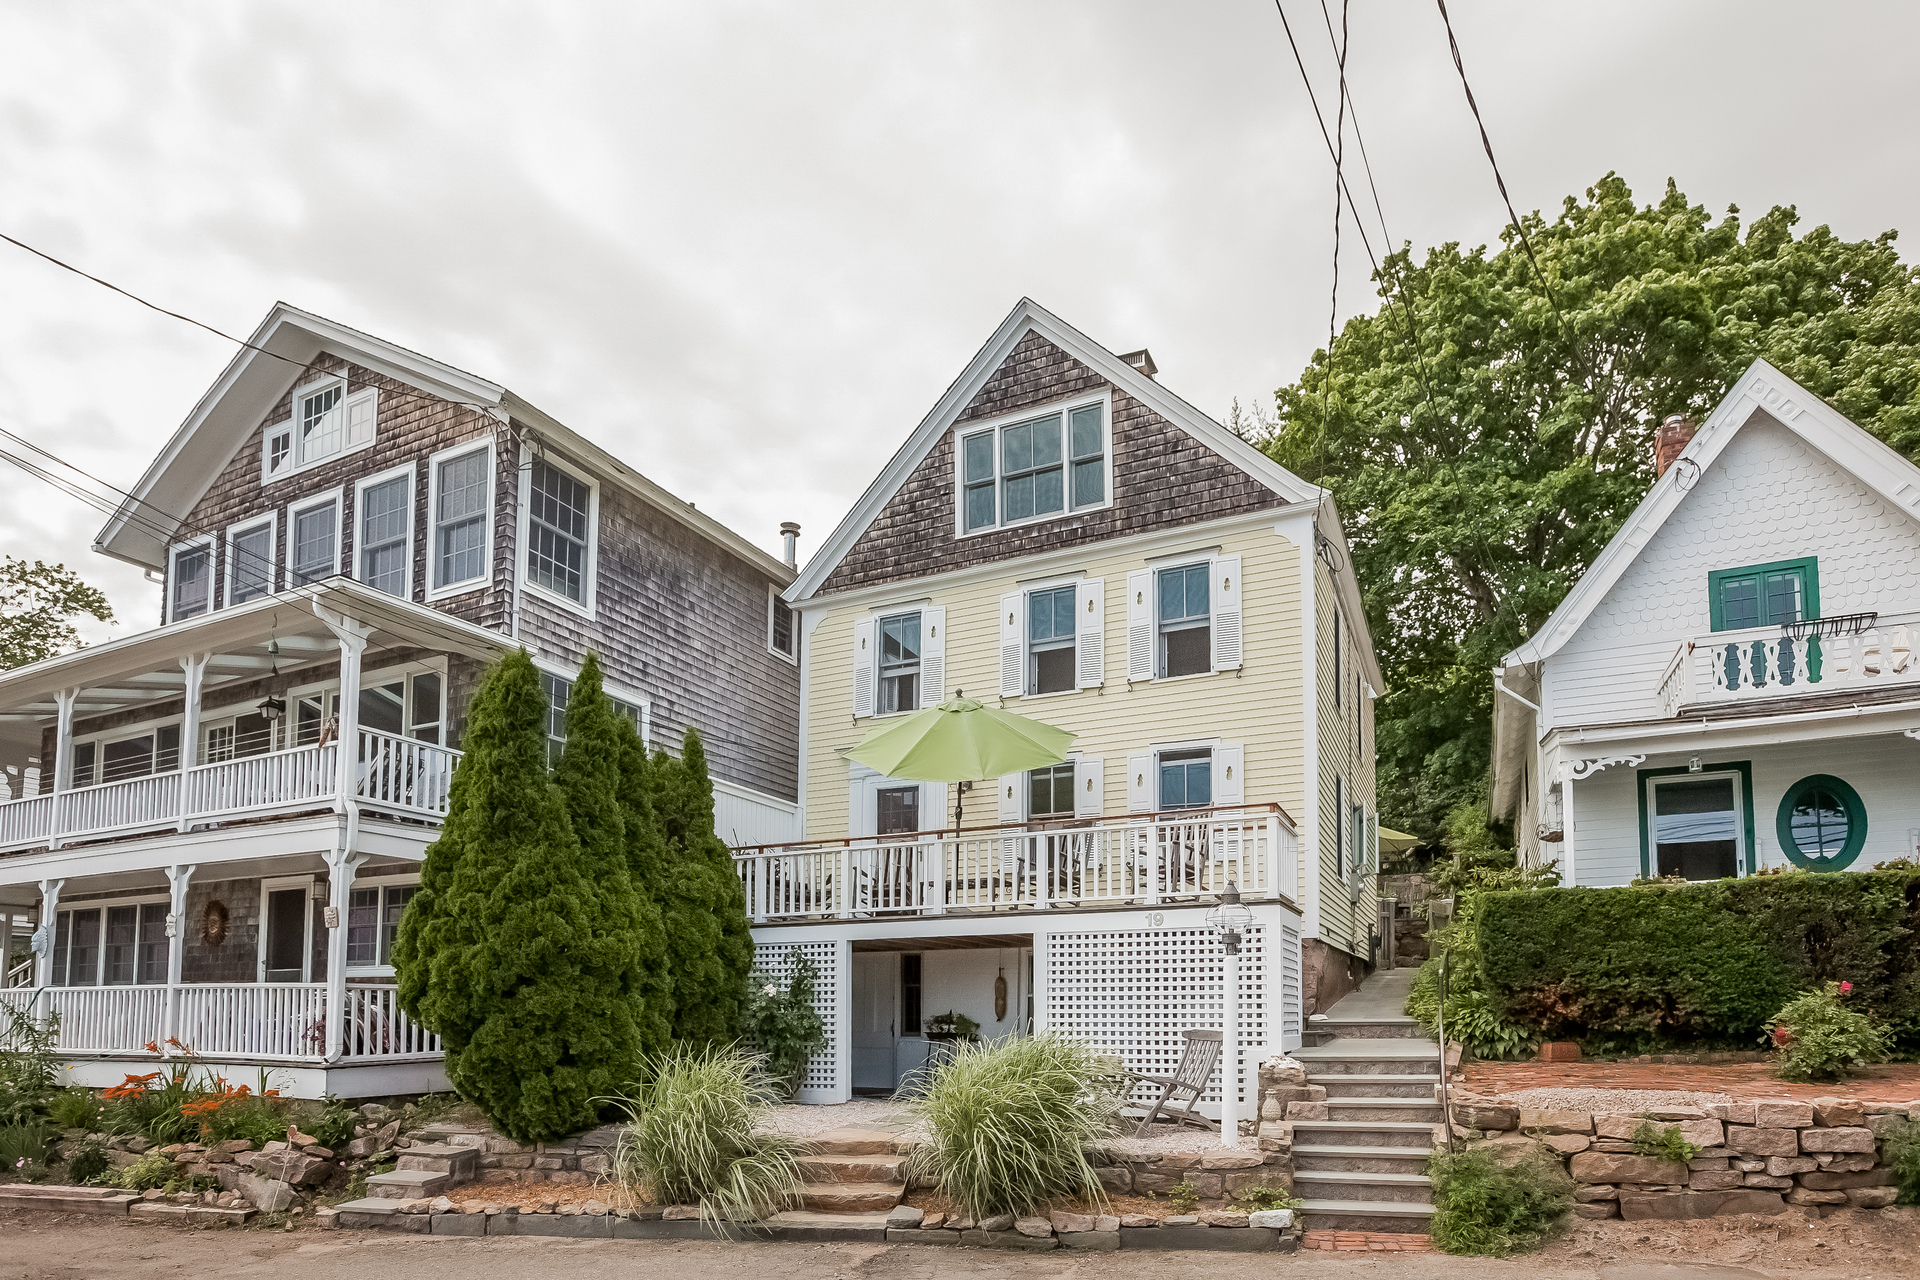 Single Family Home for Sale at 19 Halls Point Rd Branford, Connecticut, 06405 United States